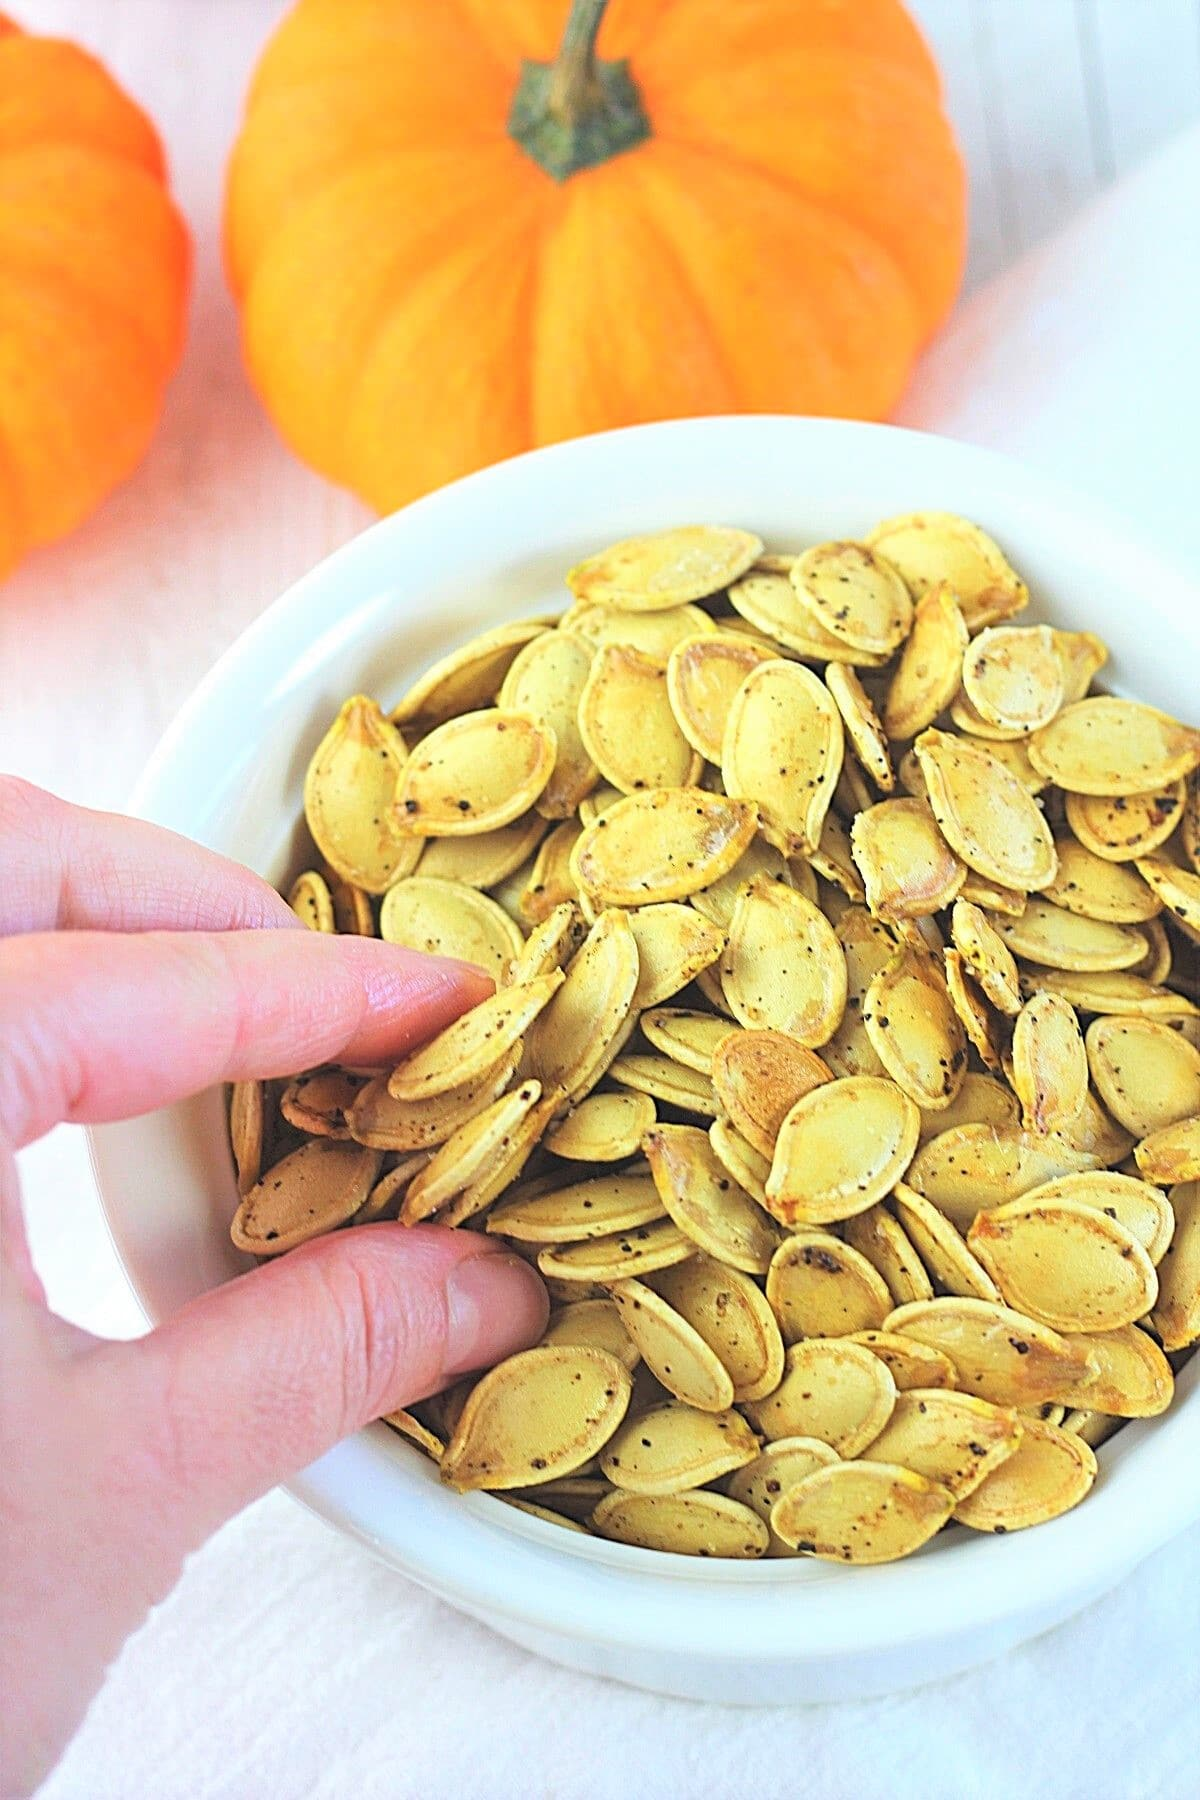 hand reaching into a bowl of roasted pumpkin seeds